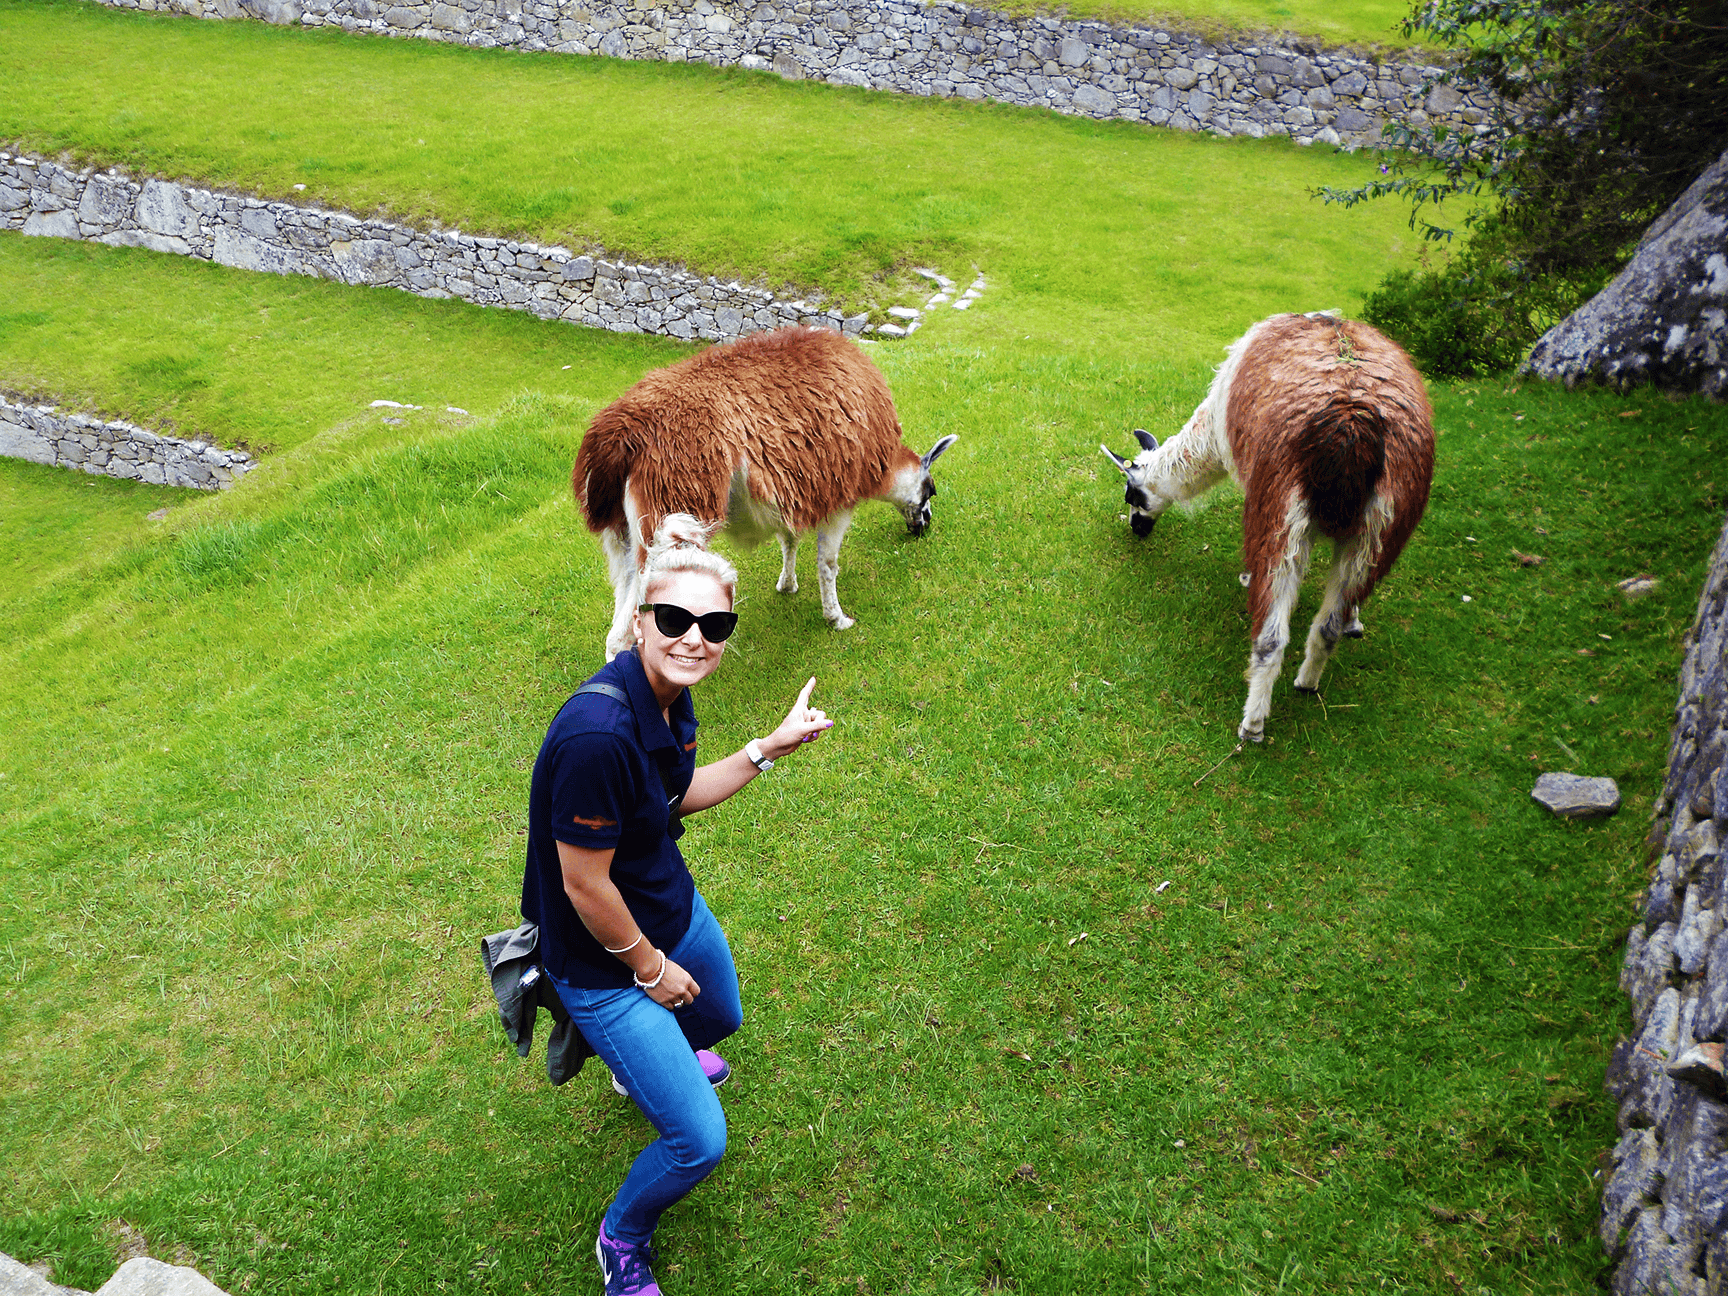 Alpacas graze on the lush grass of the central square